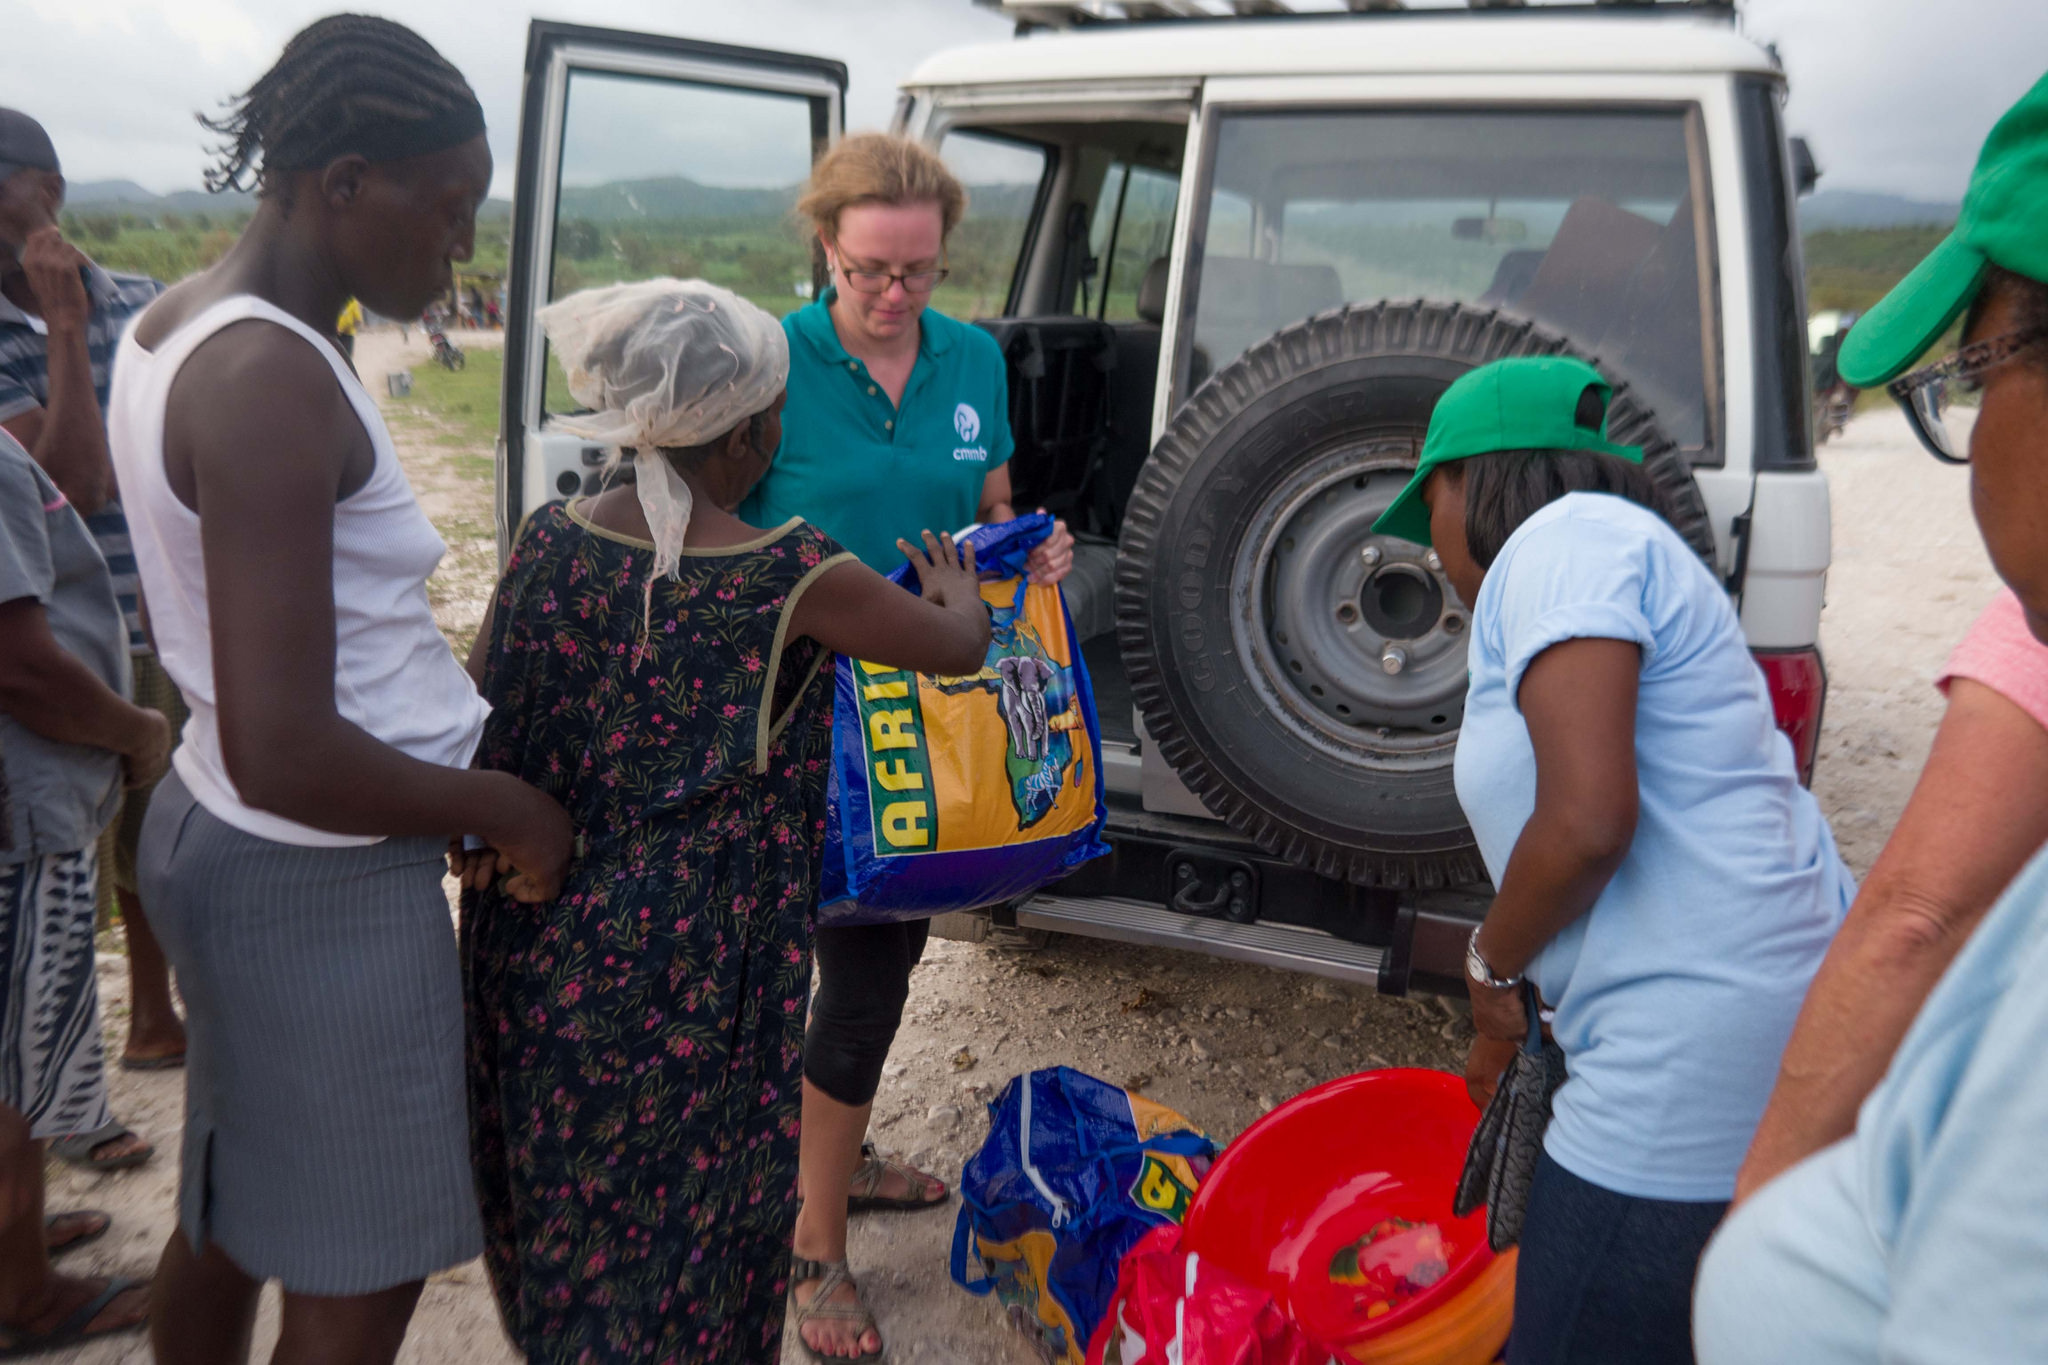 Brittany Jonap helping distribute emergency supplies to victims of Hurricane Matthew